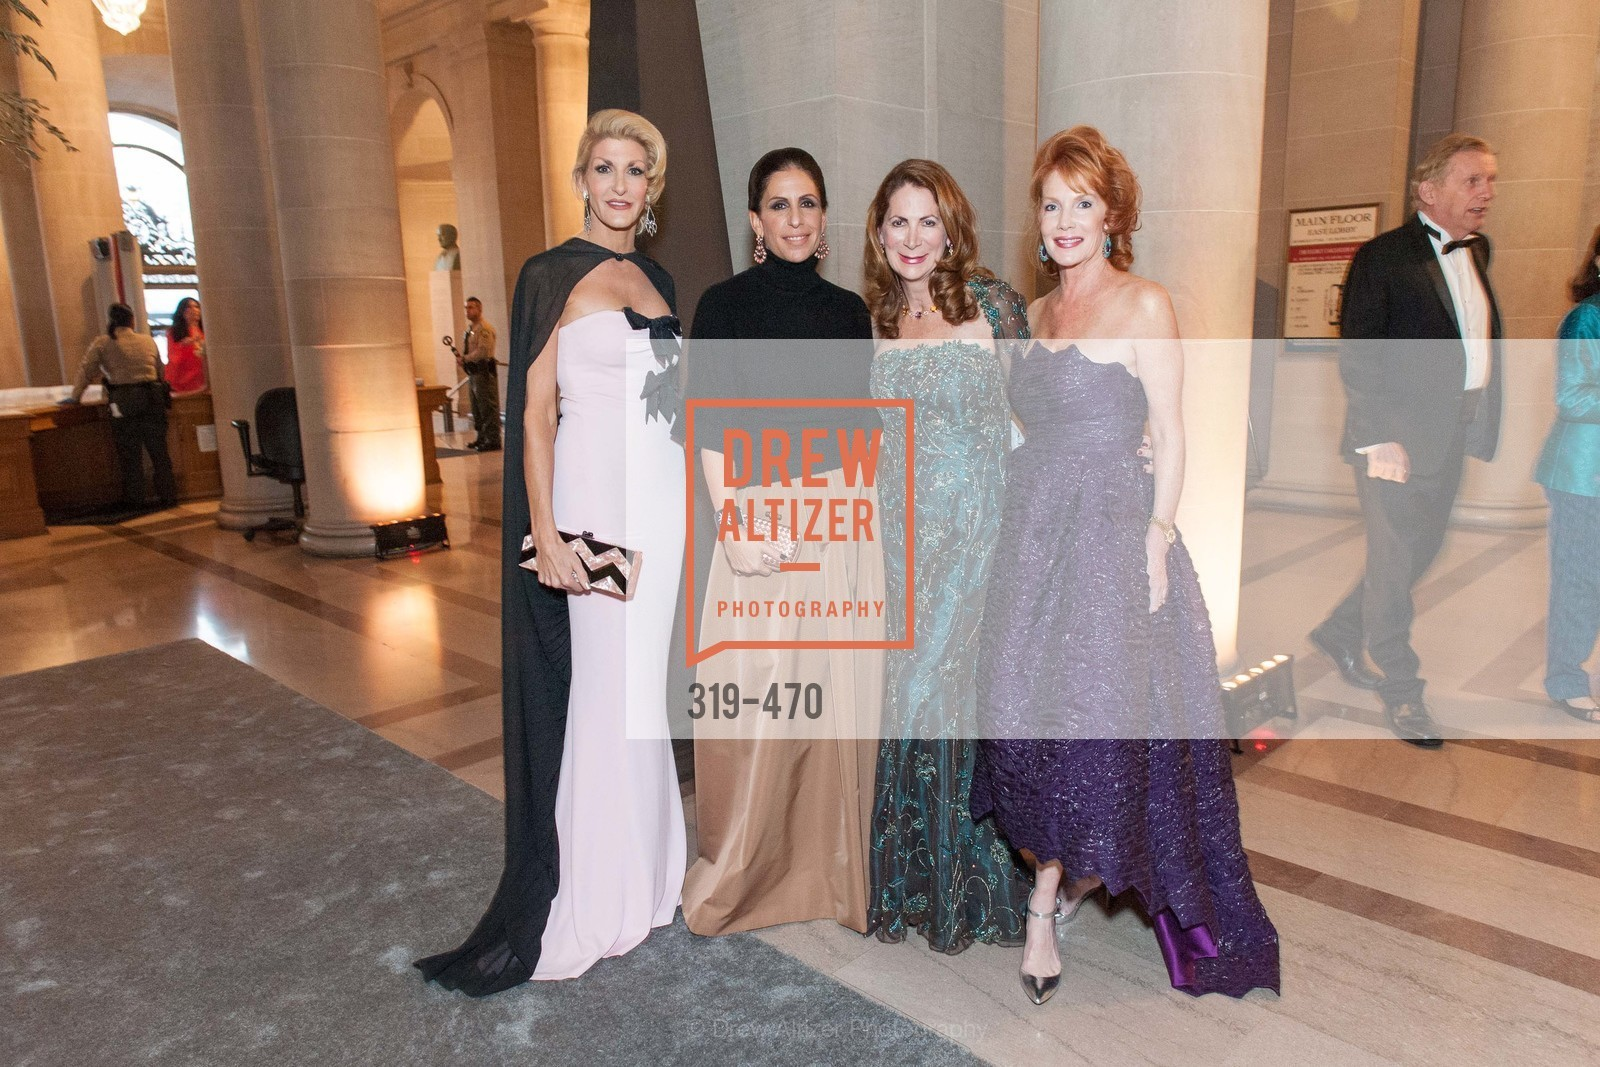 Karen Caldwell, Lisa Grotts, Patricia Ferrin Loucks, Maureen Herr, SAN FRANCISCO BALLET Opening Night Gala: PHENOMENAL - Arrivals, US. SF City Hall, January 22nd, 2014,Drew Altizer, Drew Altizer Photography, full-service agency, private events, San Francisco photographer, photographer california